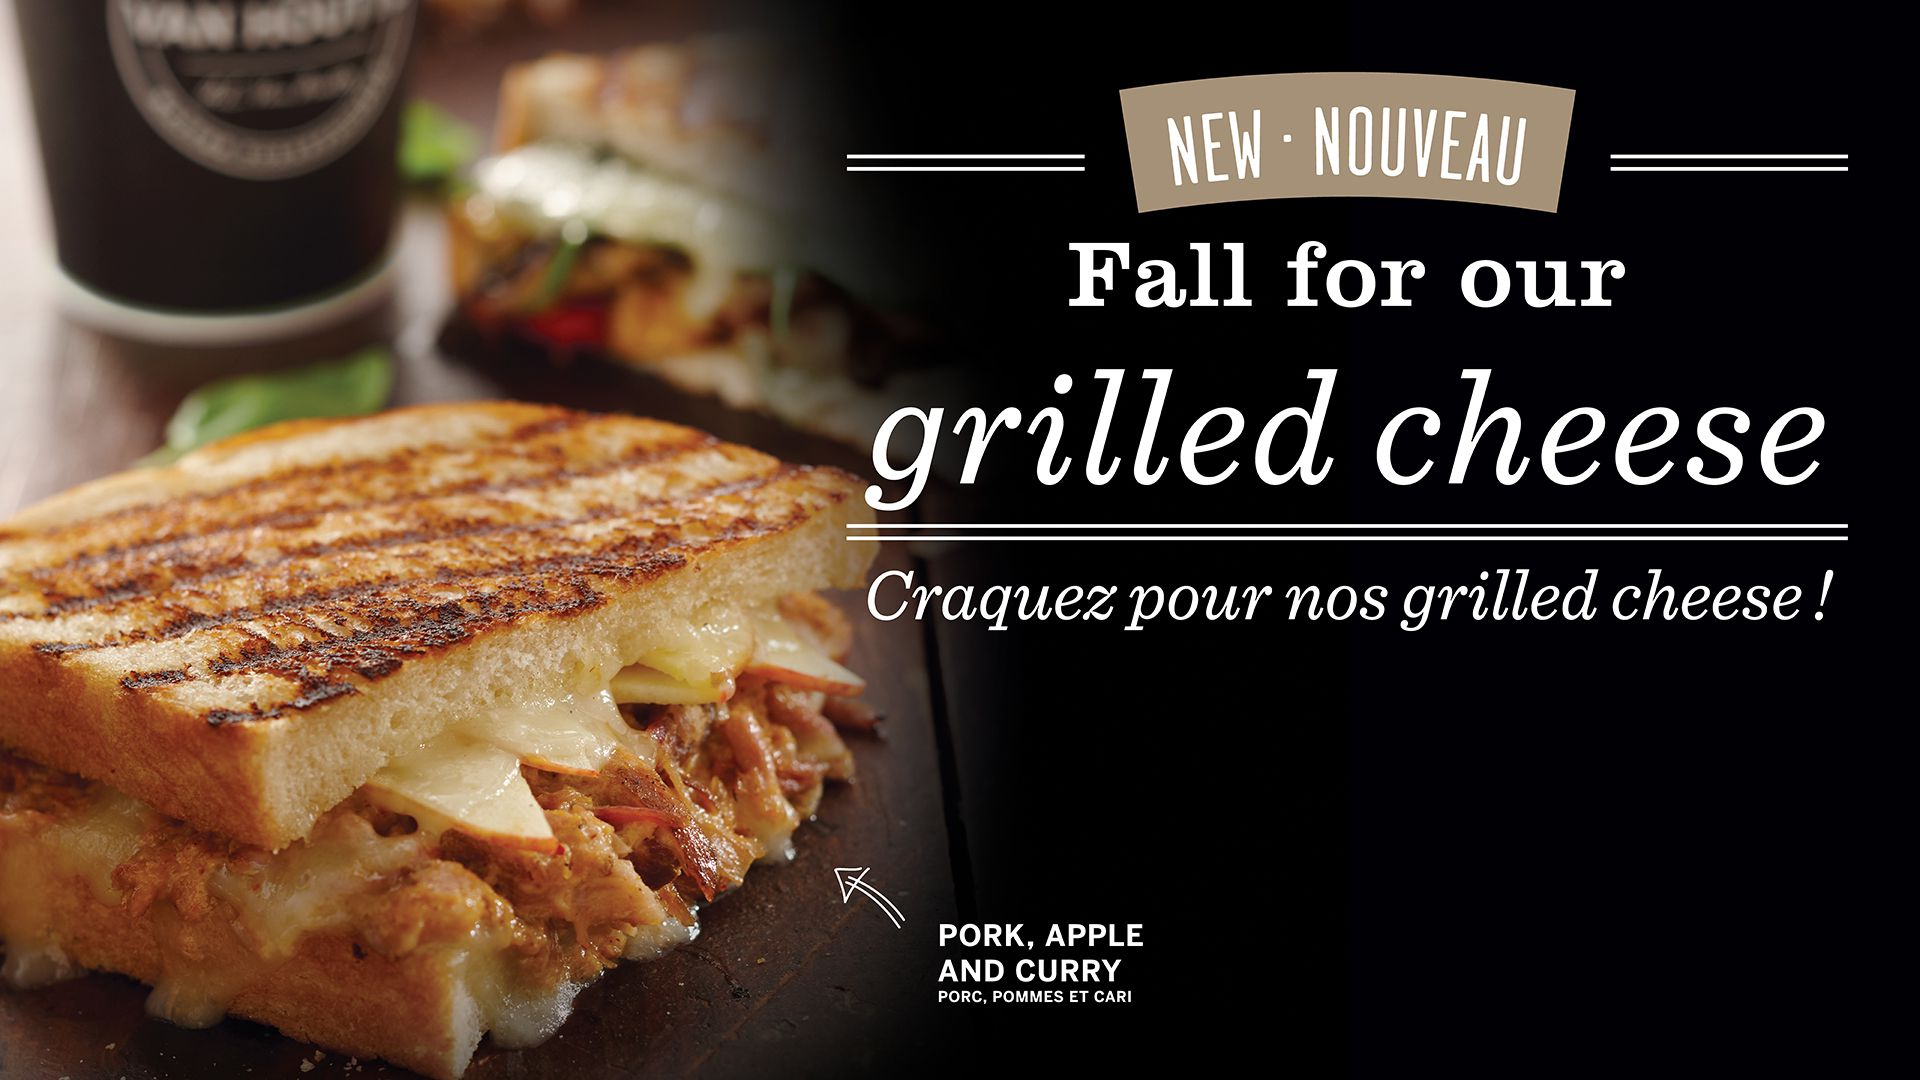 Fall for our grilled cheese!